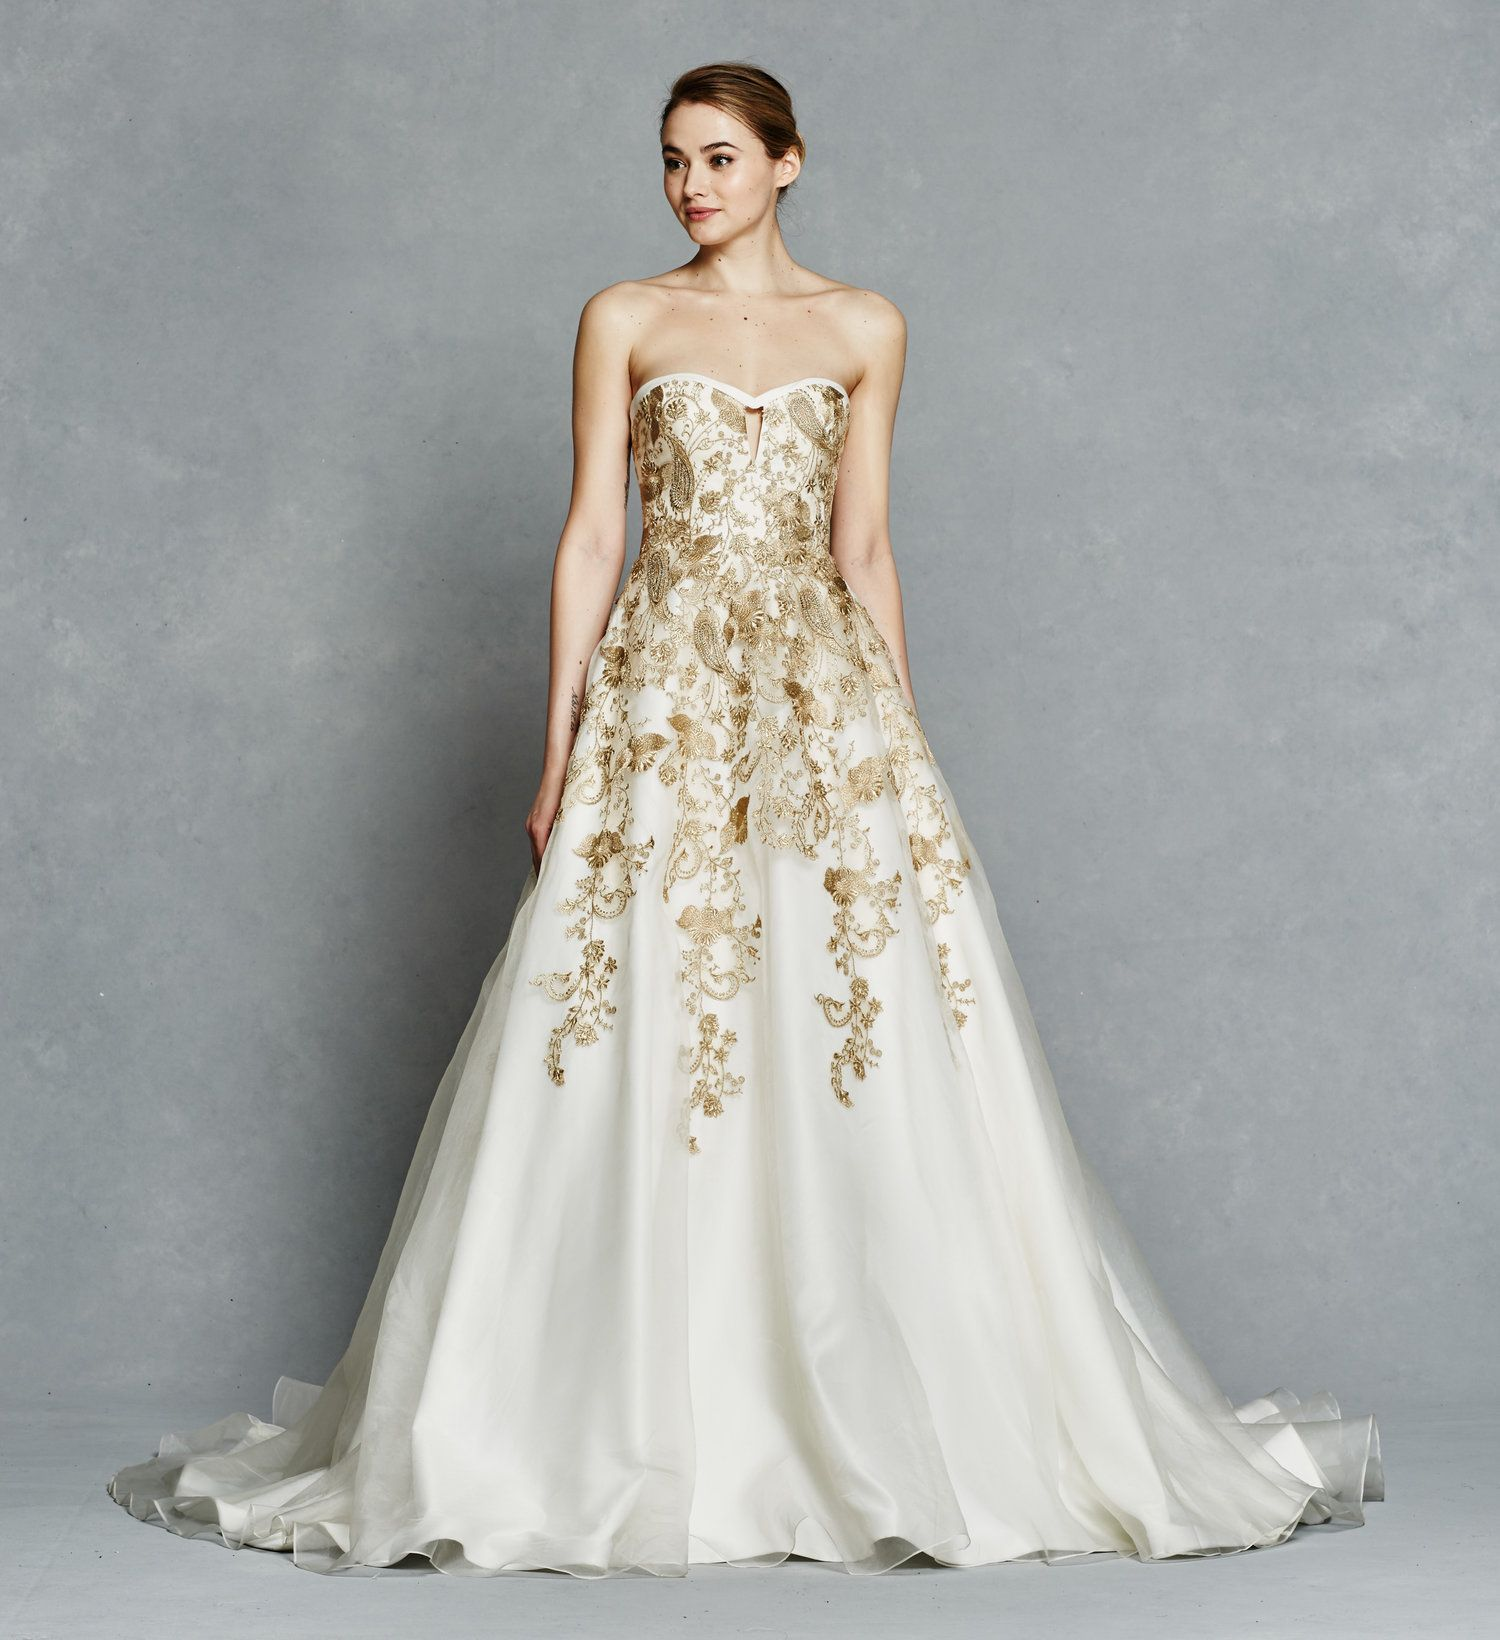 Silk organza strapless ball gown with notch neckline detailed with